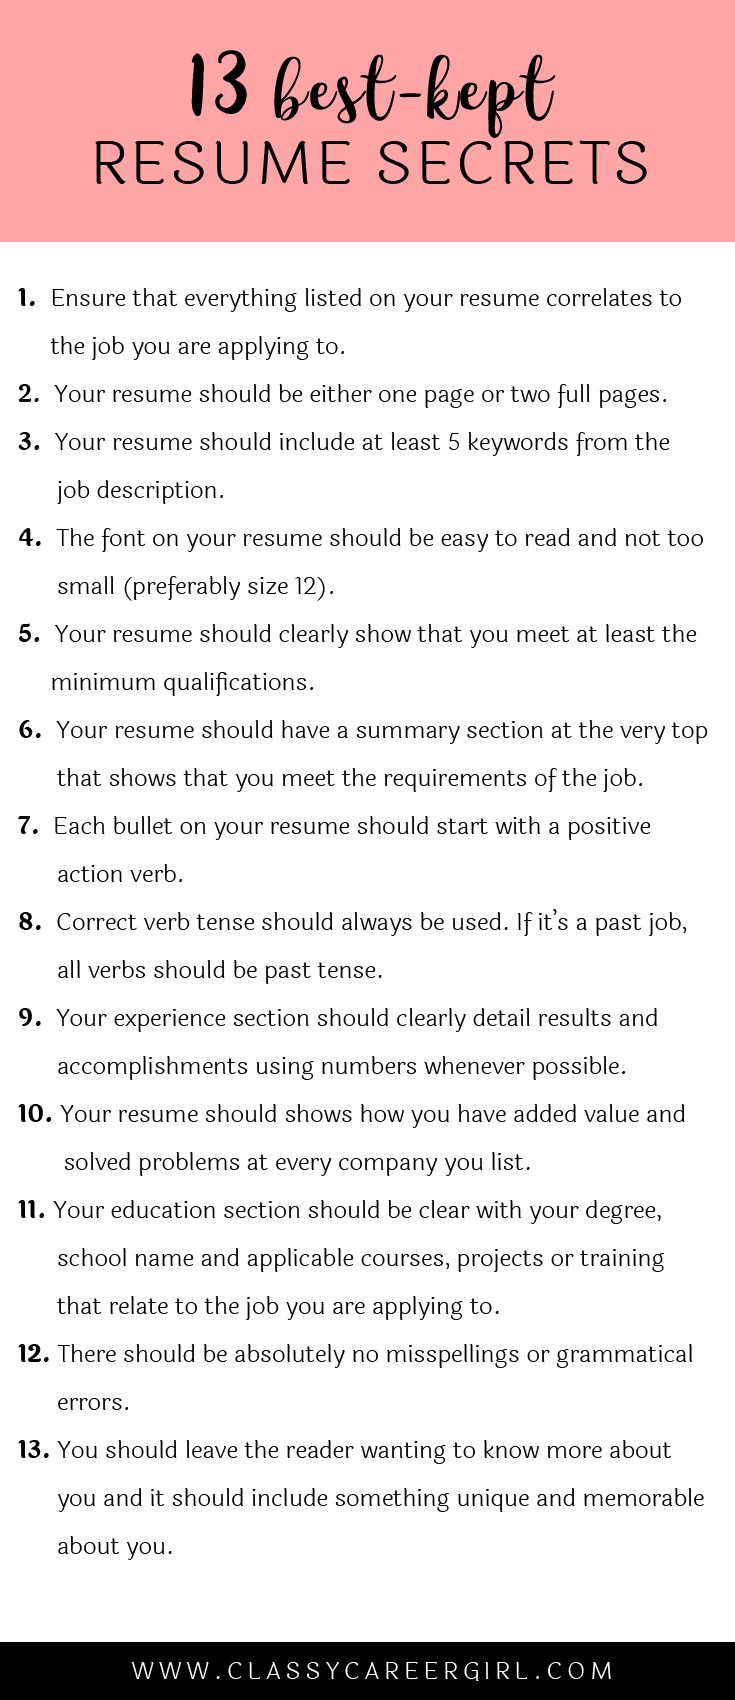 Opposenewapstandardsus  Ravishing  Ideas About Resume On Pinterest  Cv Format Resume Cv And  With Exciting Some Hiring Managers Will Toss Your Resume Out If You Dont Know These  With Appealing Hr Executive Resume Also Outstanding Resume Examples In Addition Writing A College Resume And American Career College Optimal Resume As Well As Resume For College Admission Additionally Editorial Assistant Resume From Pinterestcom With Opposenewapstandardsus  Exciting  Ideas About Resume On Pinterest  Cv Format Resume Cv And  With Appealing Some Hiring Managers Will Toss Your Resume Out If You Dont Know These  And Ravishing Hr Executive Resume Also Outstanding Resume Examples In Addition Writing A College Resume From Pinterestcom